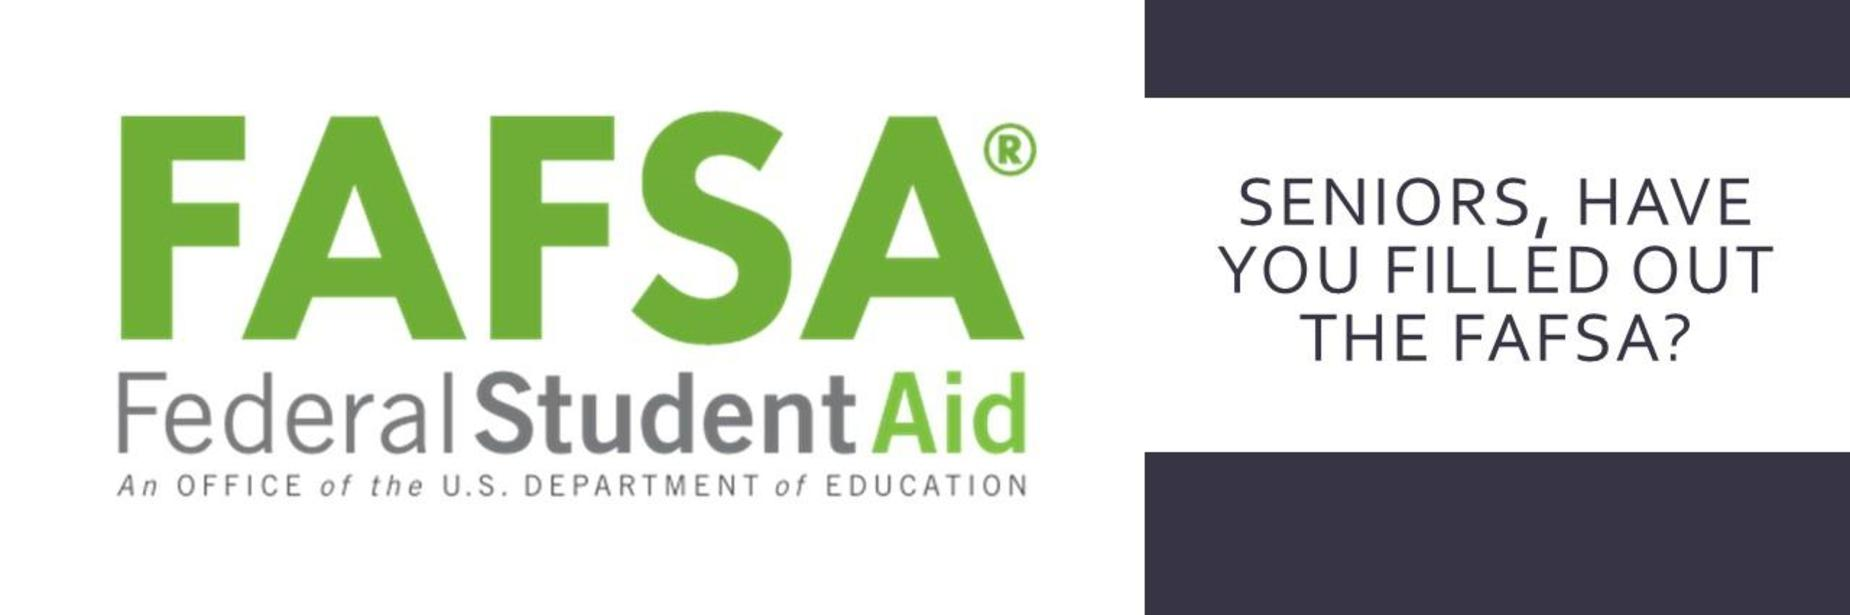 FAFSA Federal Student Aid An Office of the US Department of Education; Seniors, have you filled out the FAFSA?